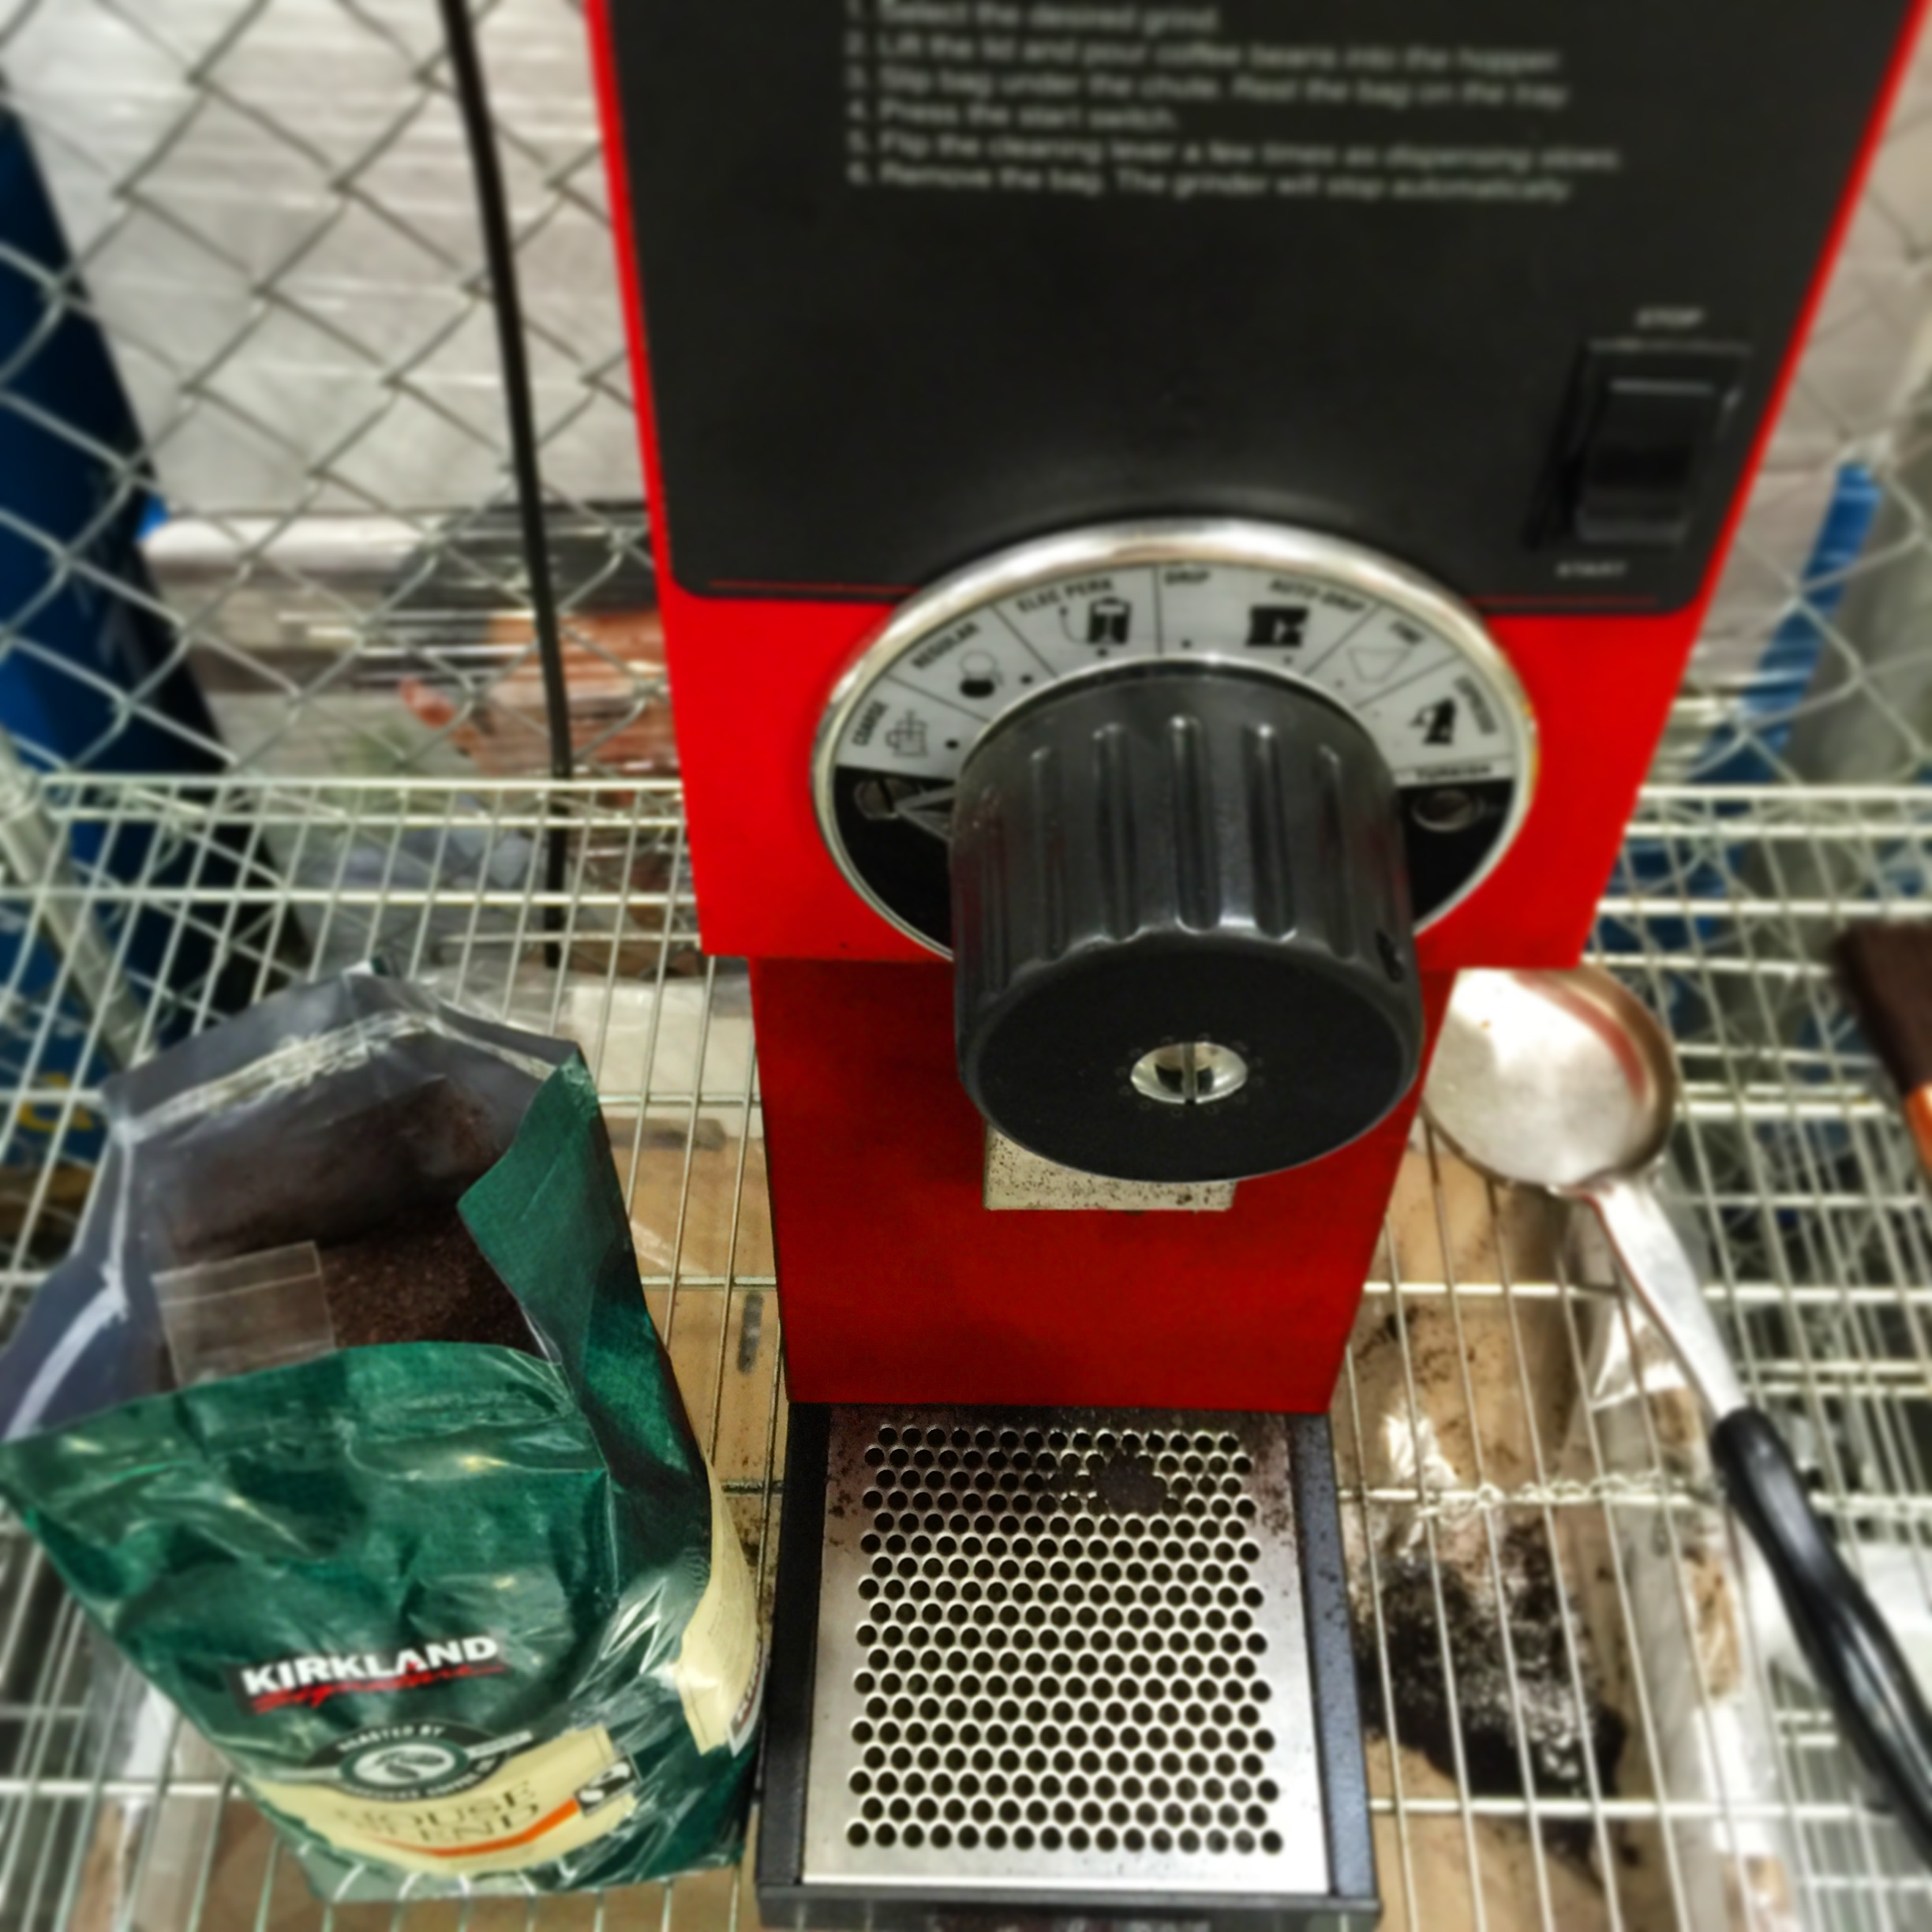 Grinder at Costco